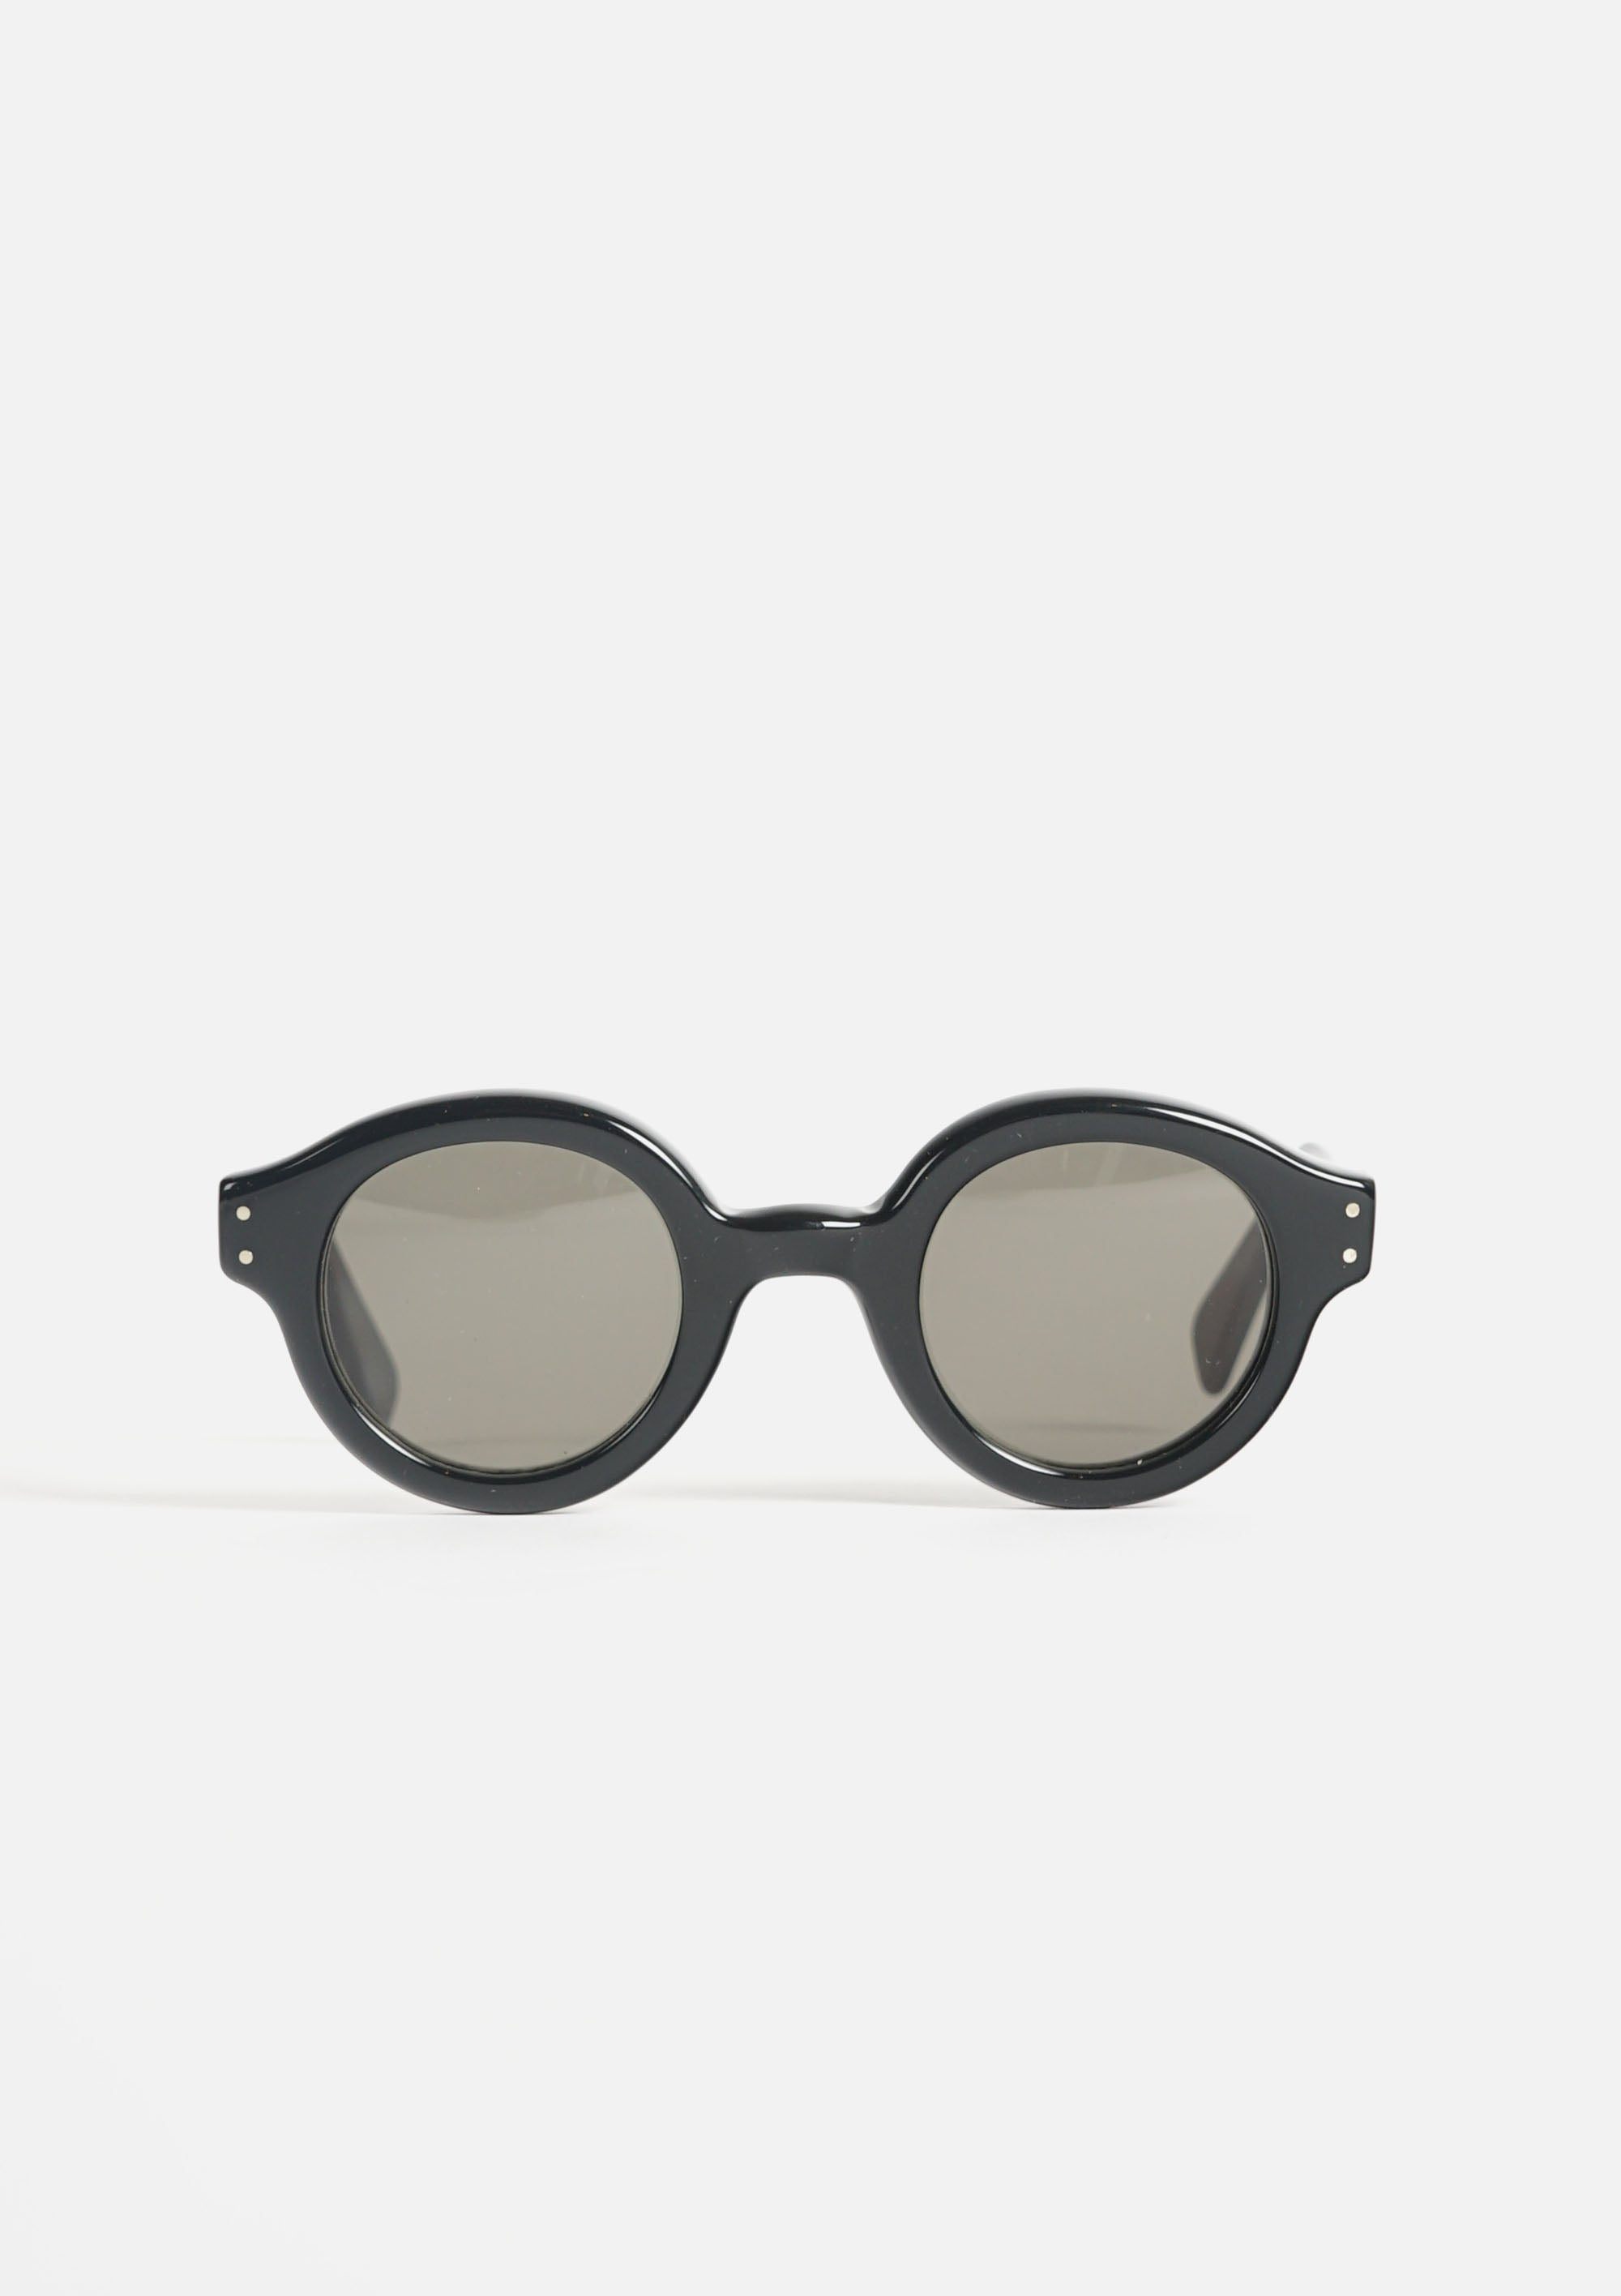 BAUBAU Sunglasses Black